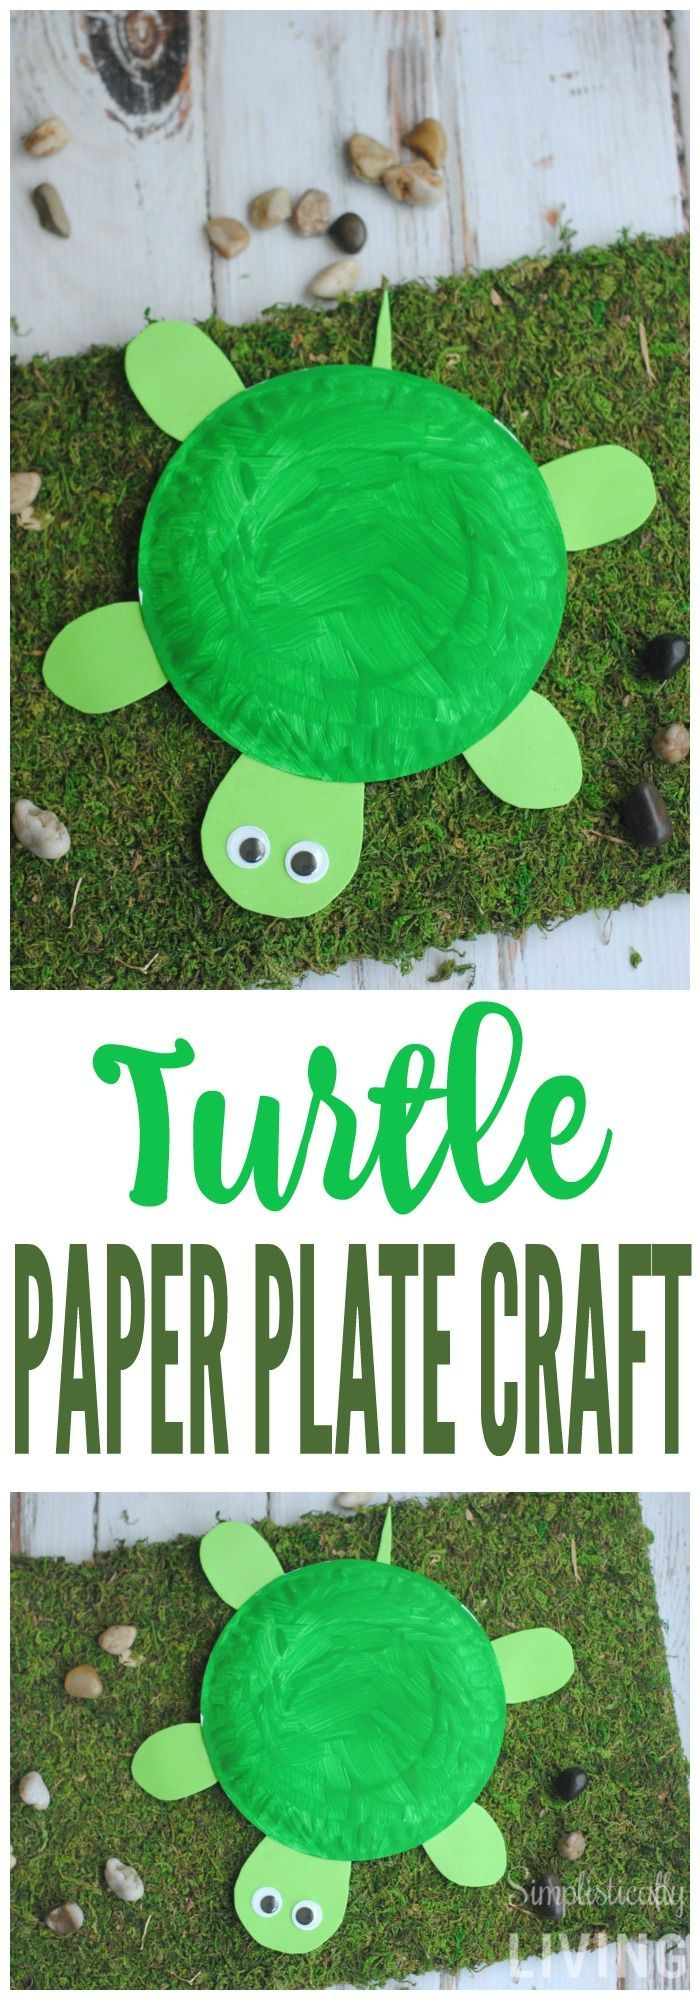 DIY Turtle Paper Plate Simplistically Living                                                                                                                                                                                 More